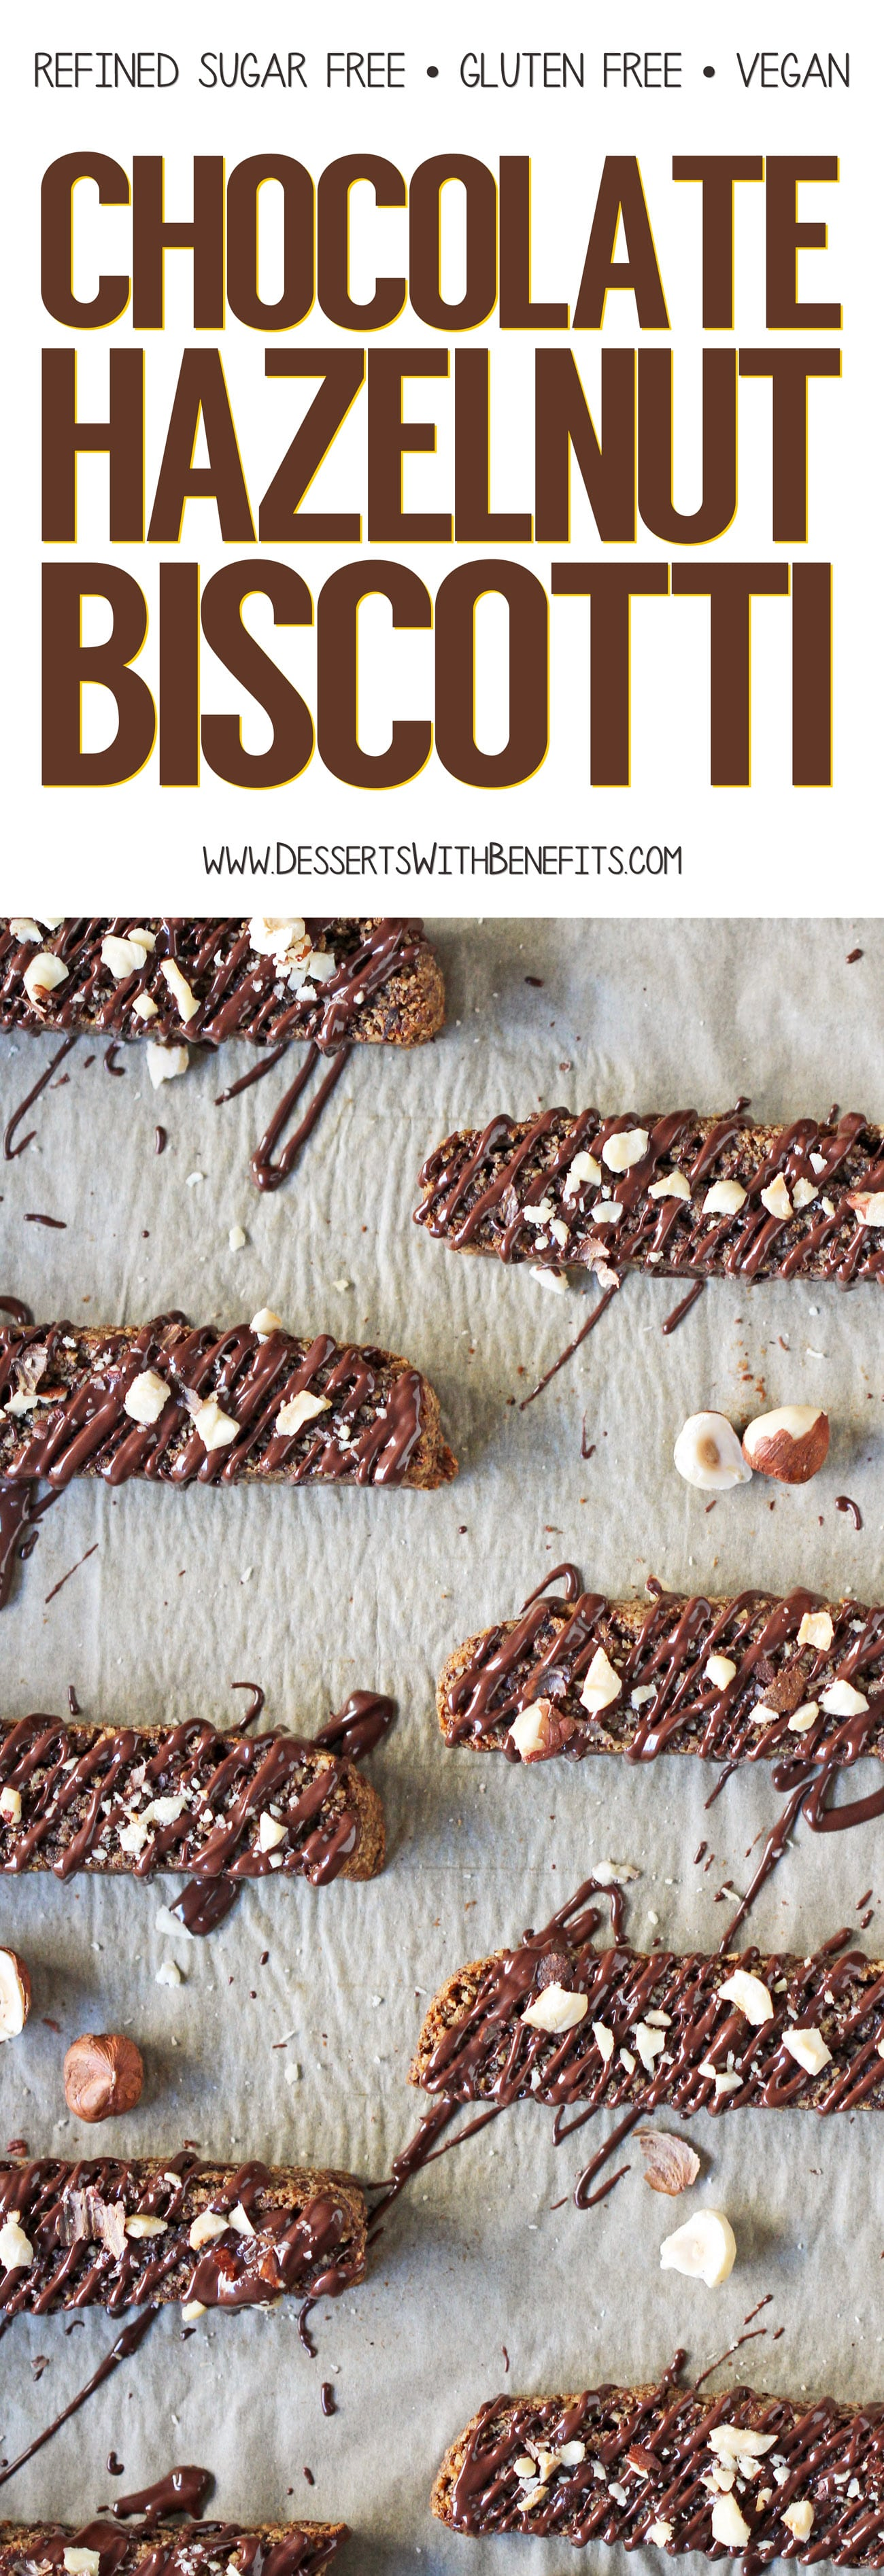 This Chocolate Hazelnut Biscotti is firm, crunchy, and not tooth-achingly sweet -- just like all biscotti should be! The only difference between this recipe and storebought is that this one has seriously delicious flavor AND it's good for you! It's rich from the hazelnuts and decadent from the chocolate, while also being refined sugar free, gluten free, dairy free, and vegan! Healthy dessert recipes at the Desserts With Benefits Blog (www.DessertsWithBenefits.com)